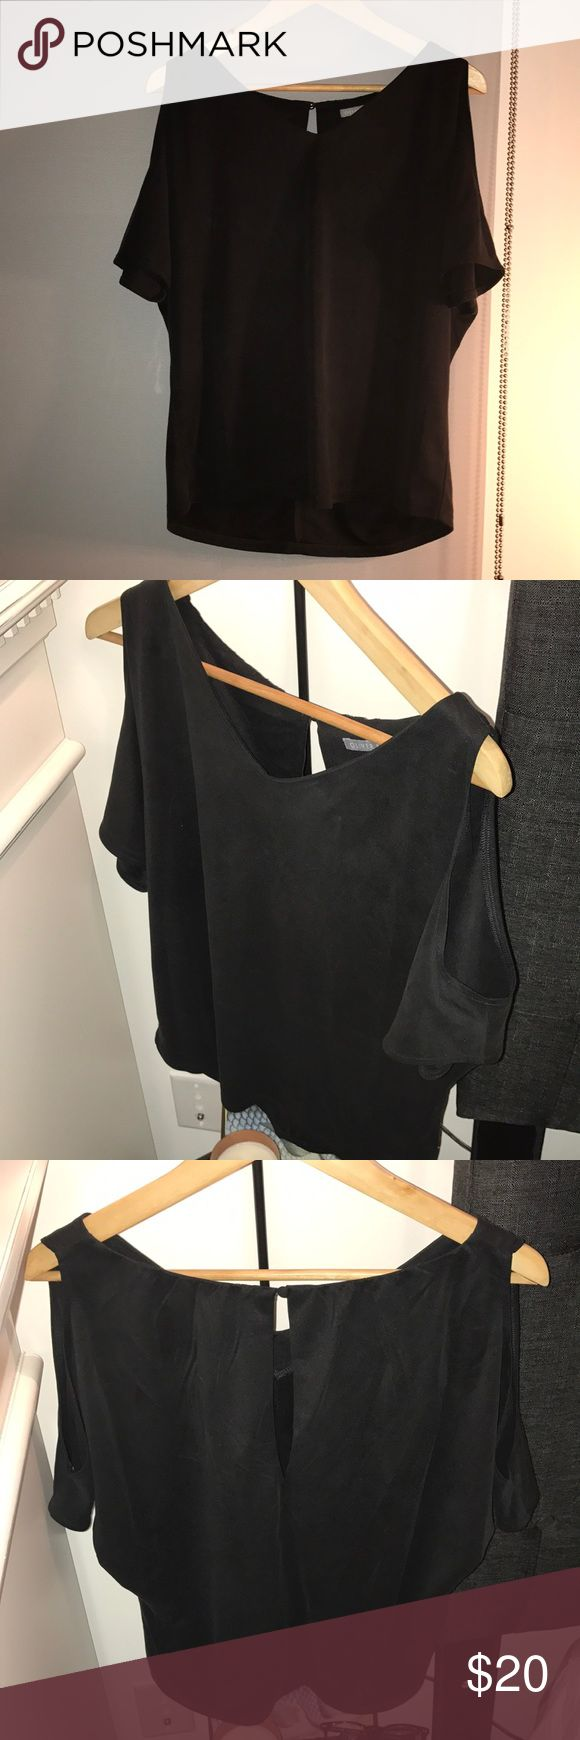 Super soft open shoulder black lounge top Bought this too in the U.K. 🇬🇧 it's a size 8, which is equivalent to a size 4 in the US. Worn only once, goes great with jeans, leggings... pretty much anything! Can dress up with a long necklace, or dress down with shorts (white are super cute for summer) Bought from a boutique in the U.K. Called Oliver Bonas. Oliver Bonas Tops Blouses